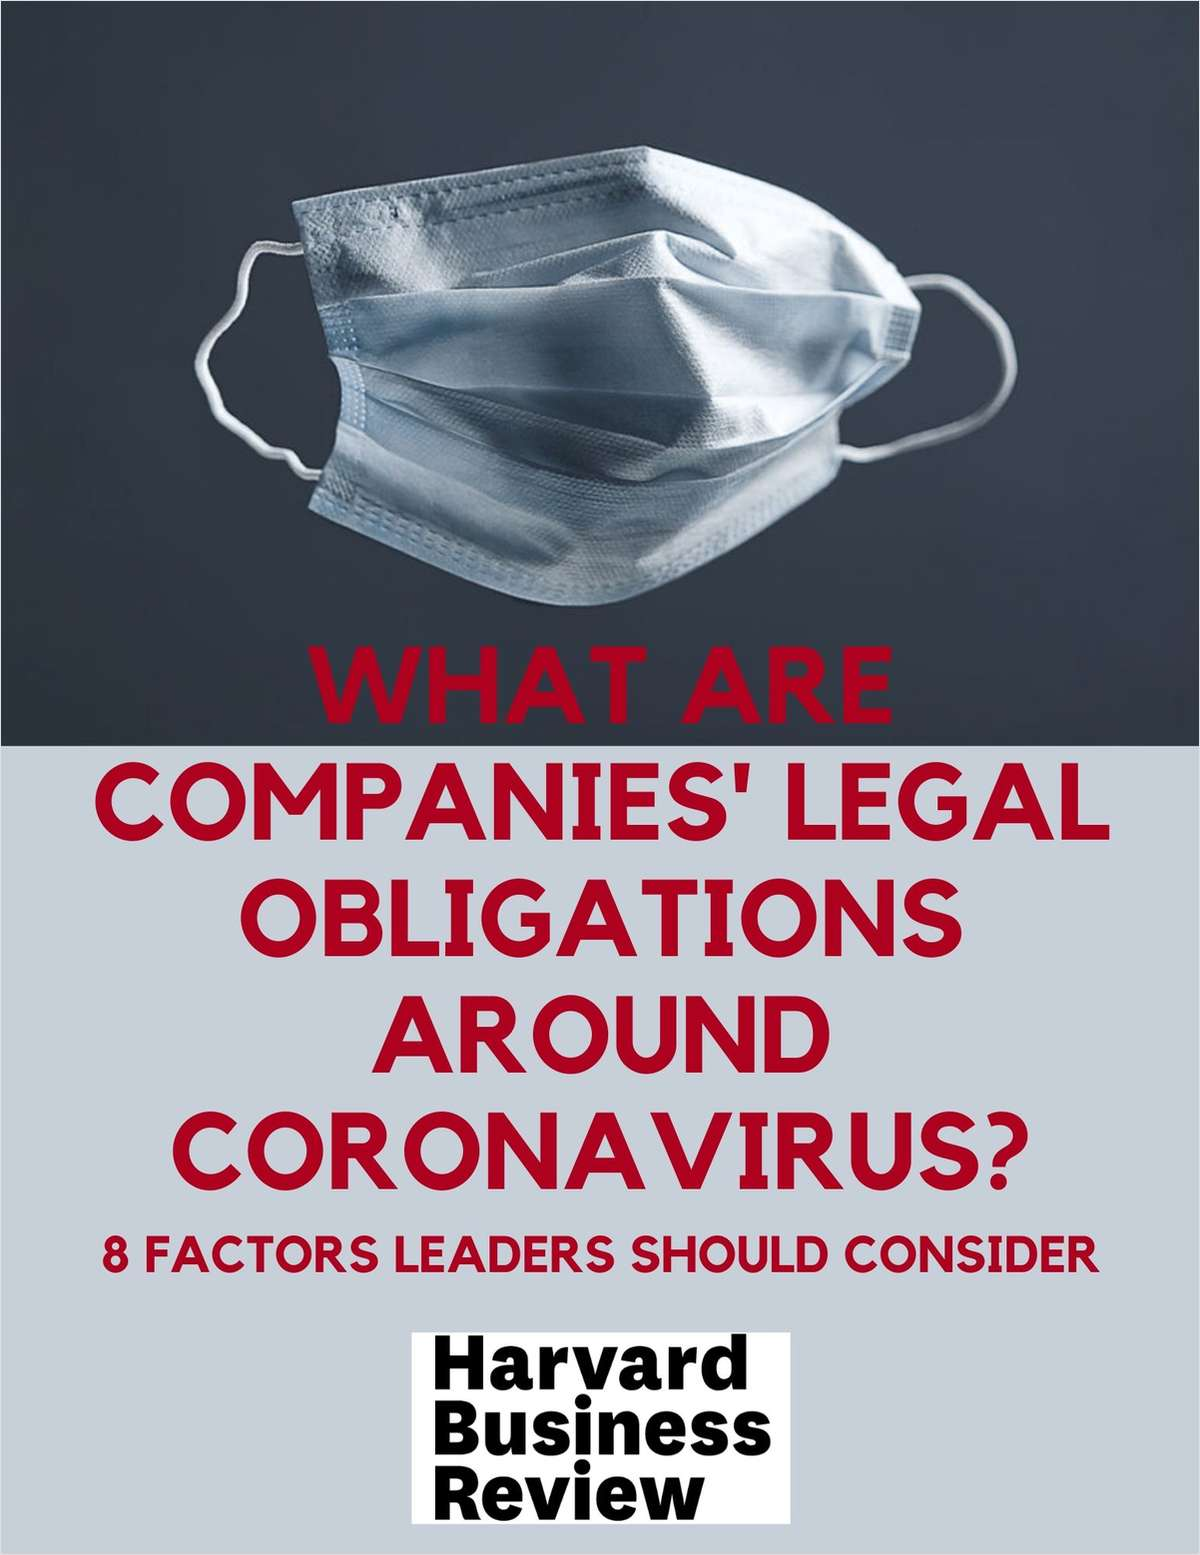 What Are Companies' Legal Obligations Around Coronavirus?